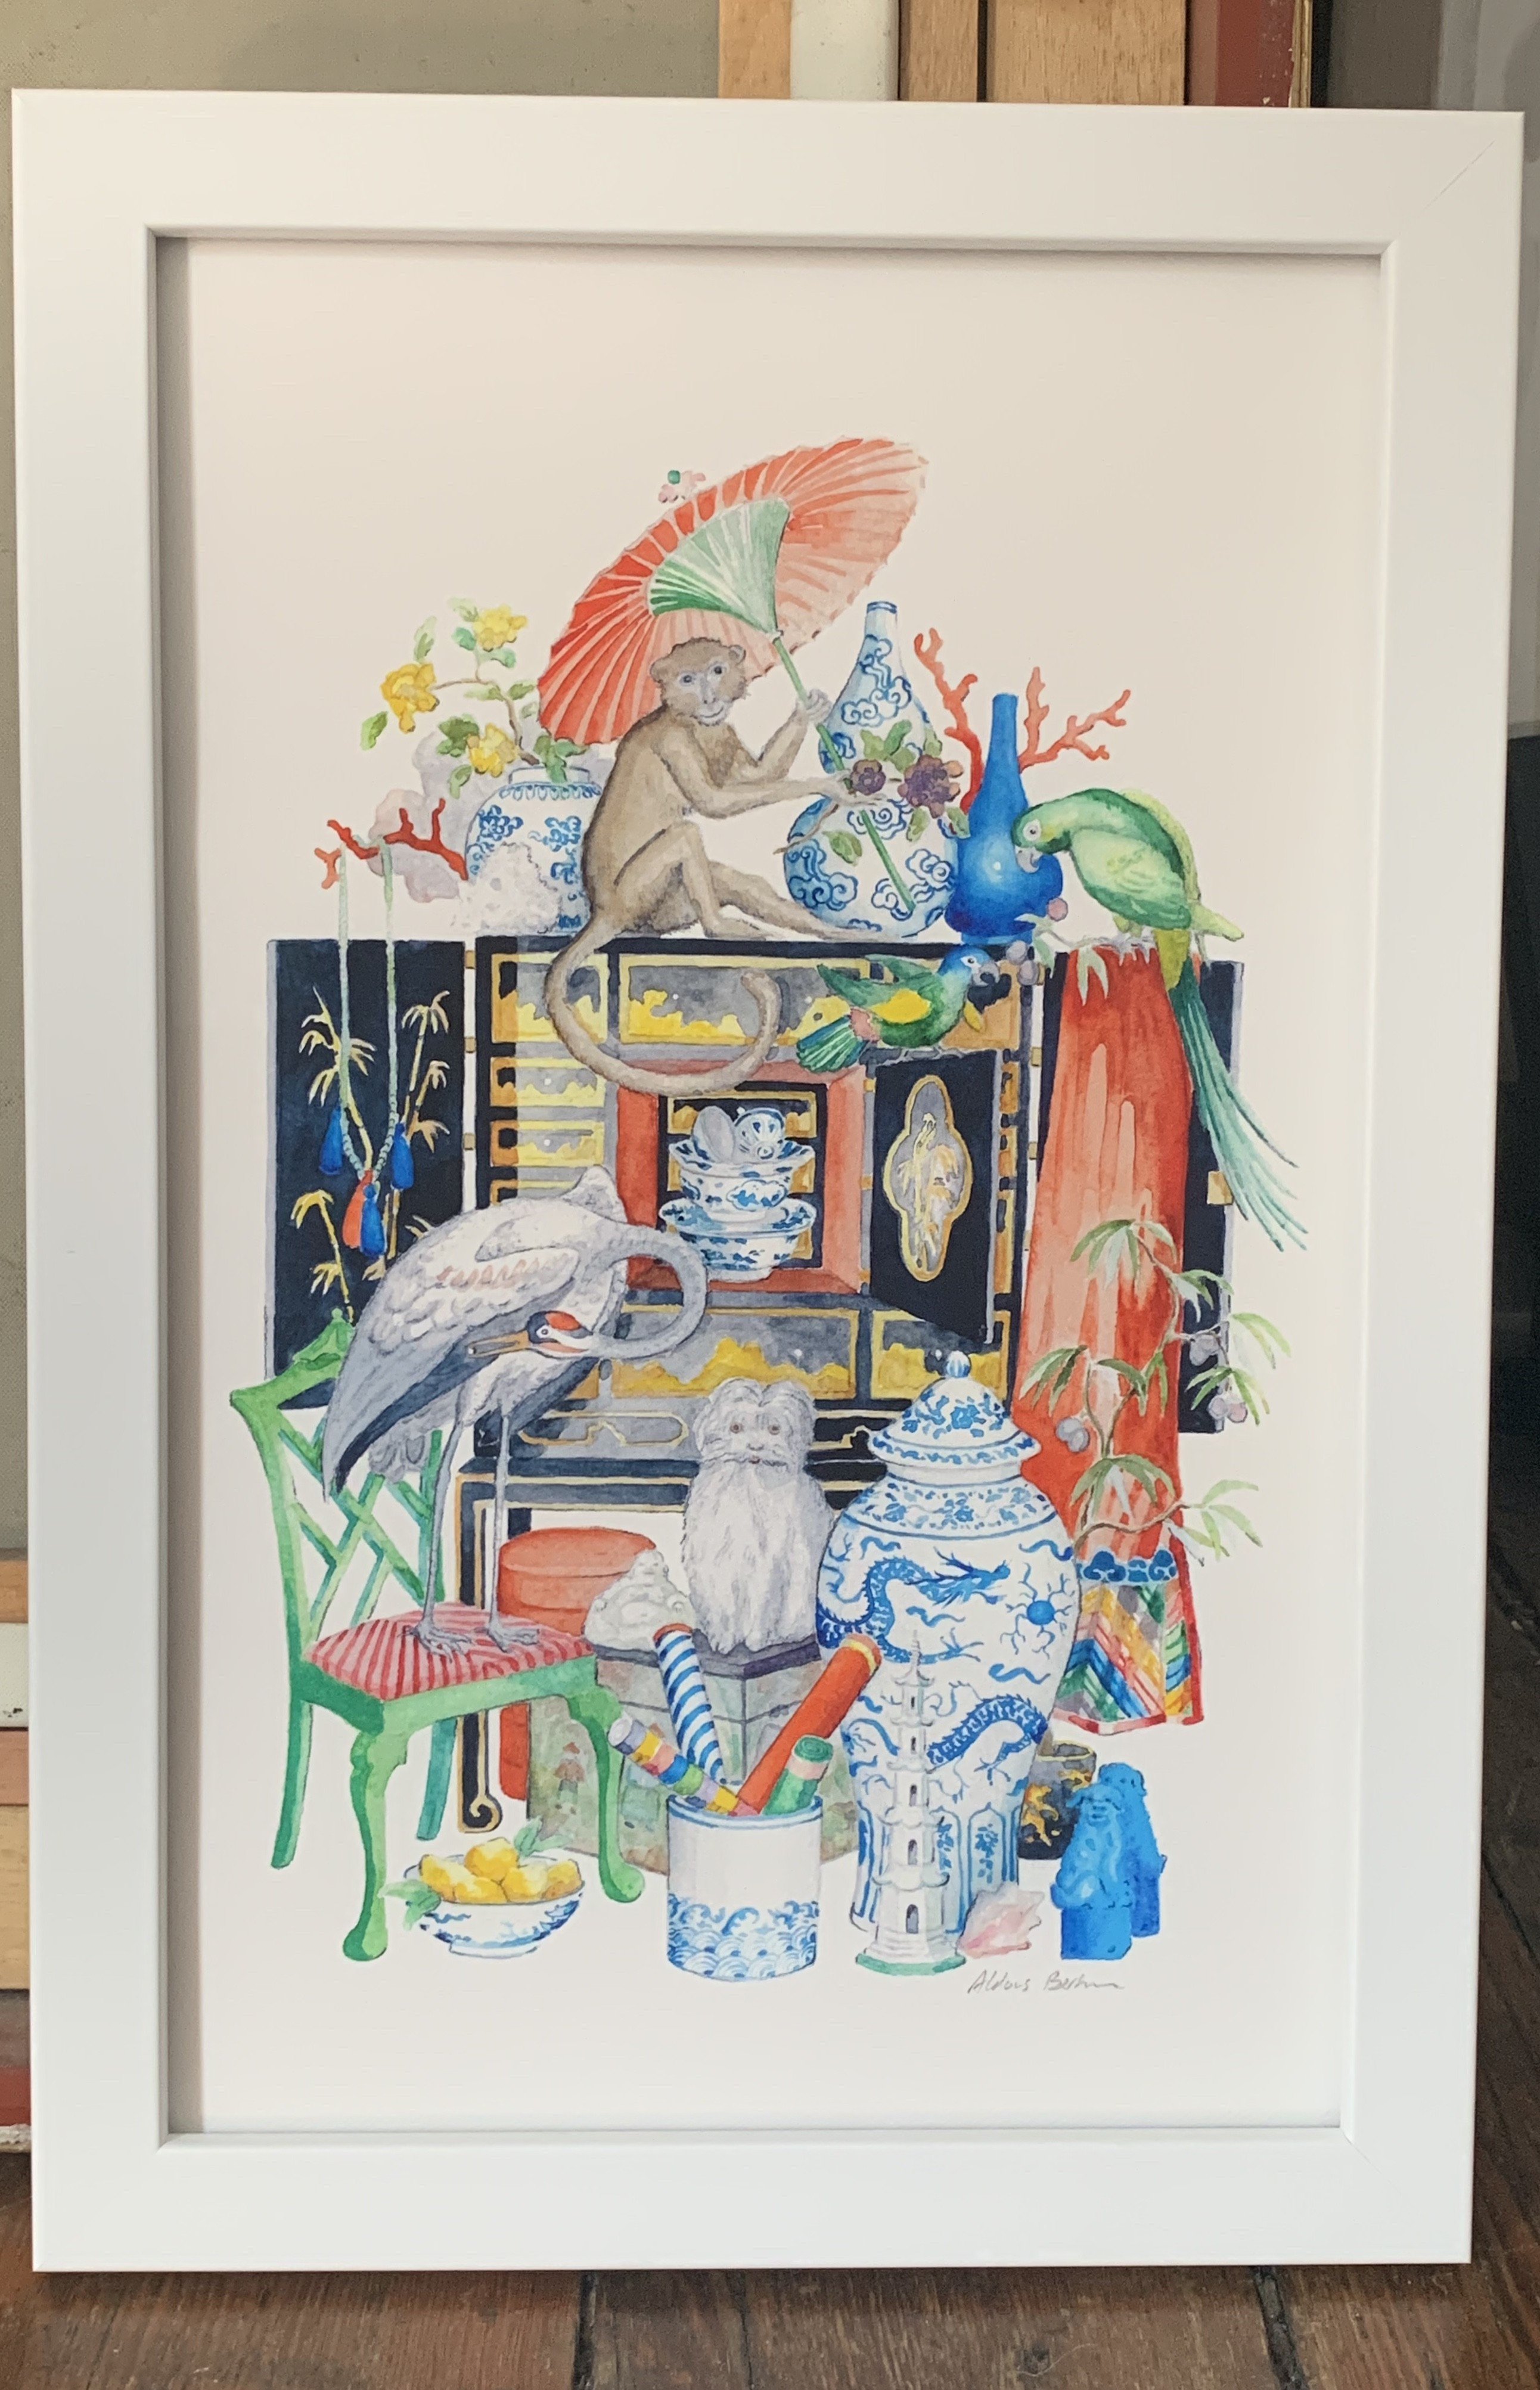 Aldous Bertram Signed Giclee - Chinoiserie Menagerie